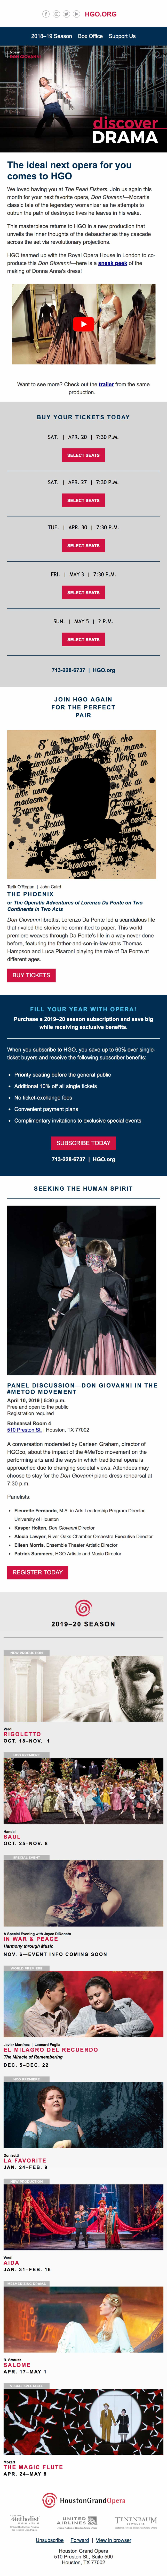 The perfect opera is waiting for you - mobile view